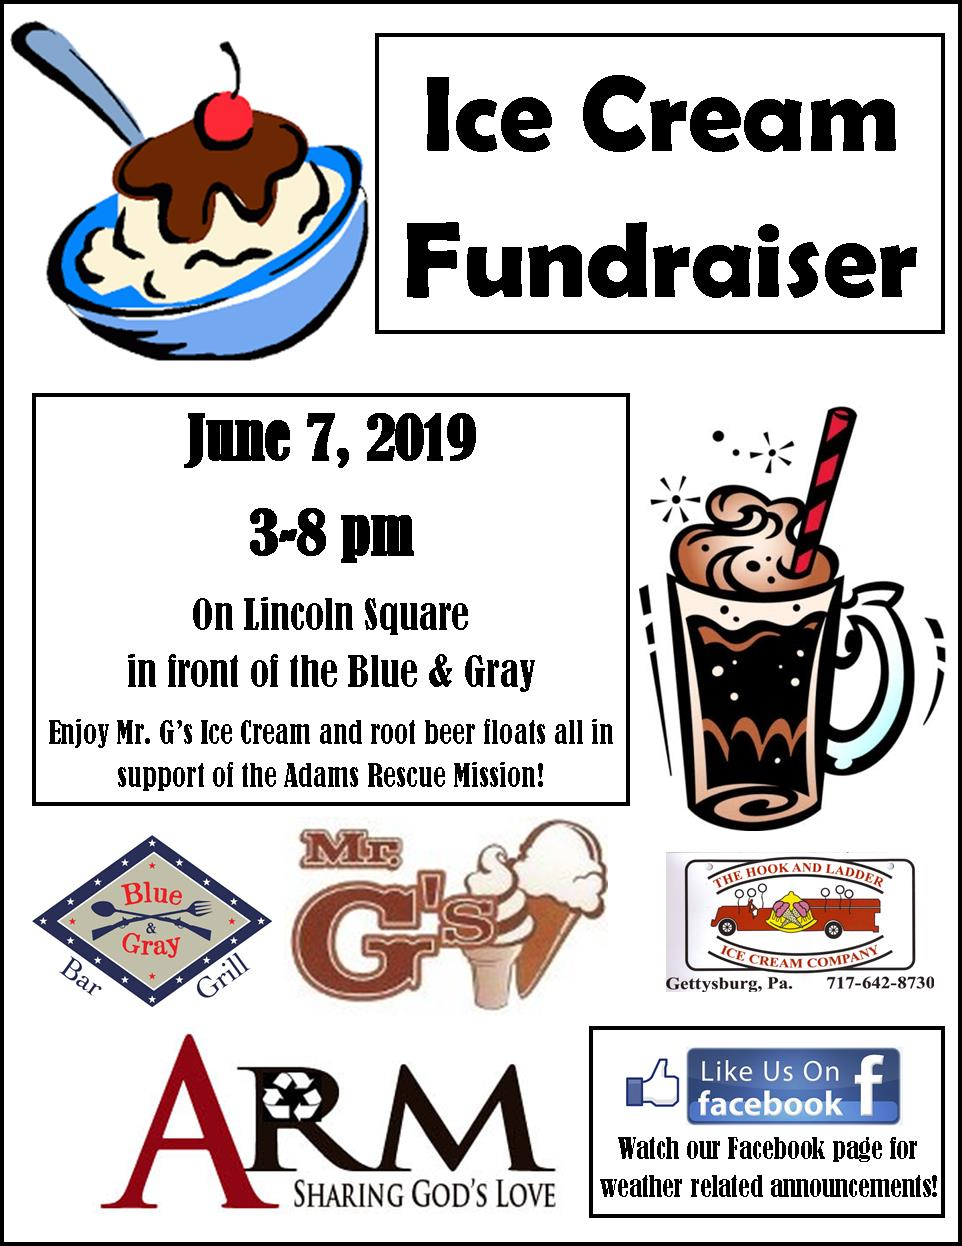 Ice Cream Fundraiser June 7 2019.jpg